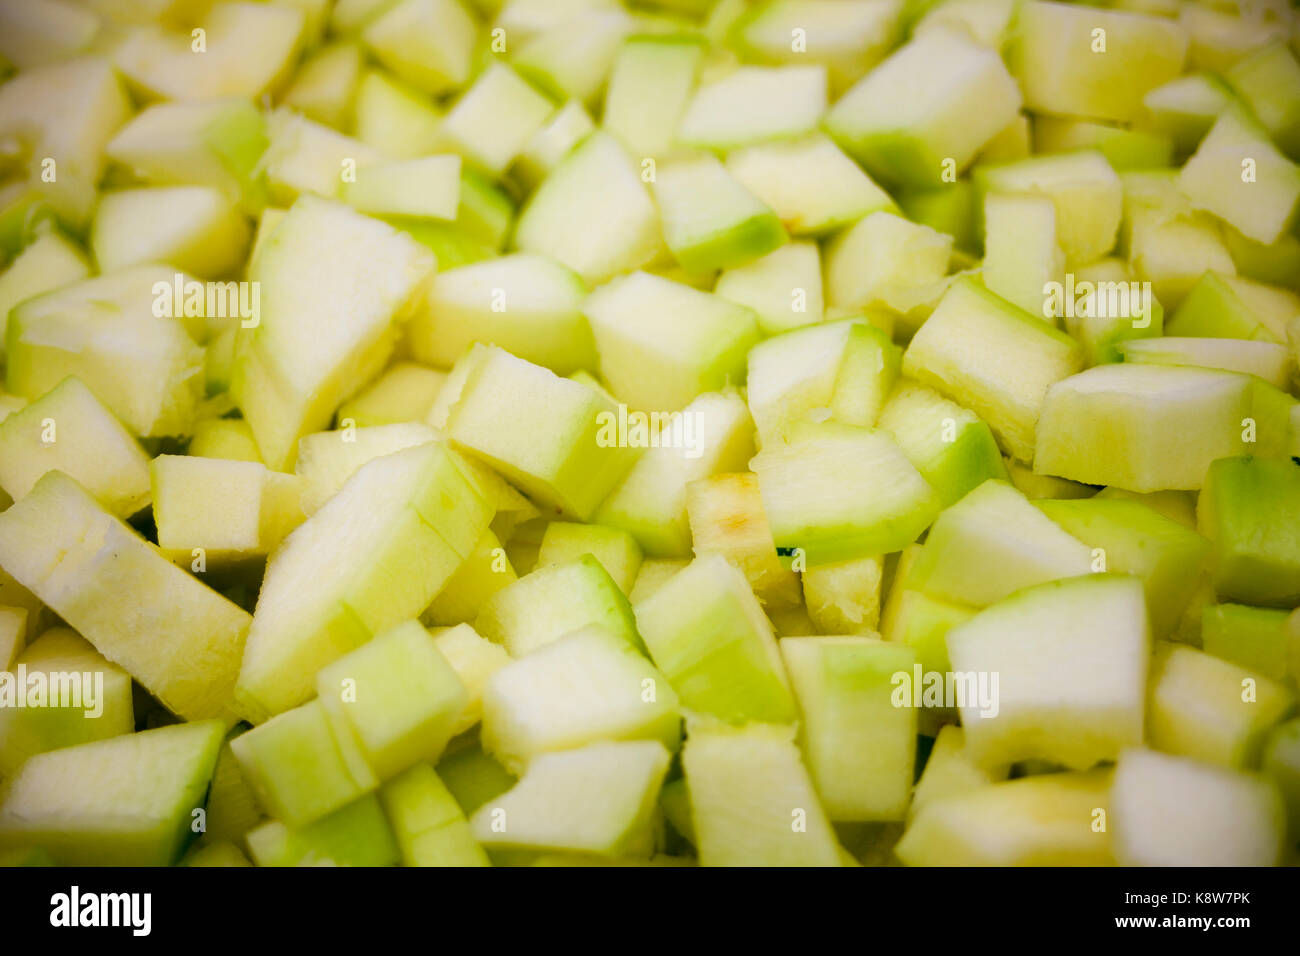 Green, yellow food background texture on Zucchini, Courgette inc - Stock Image